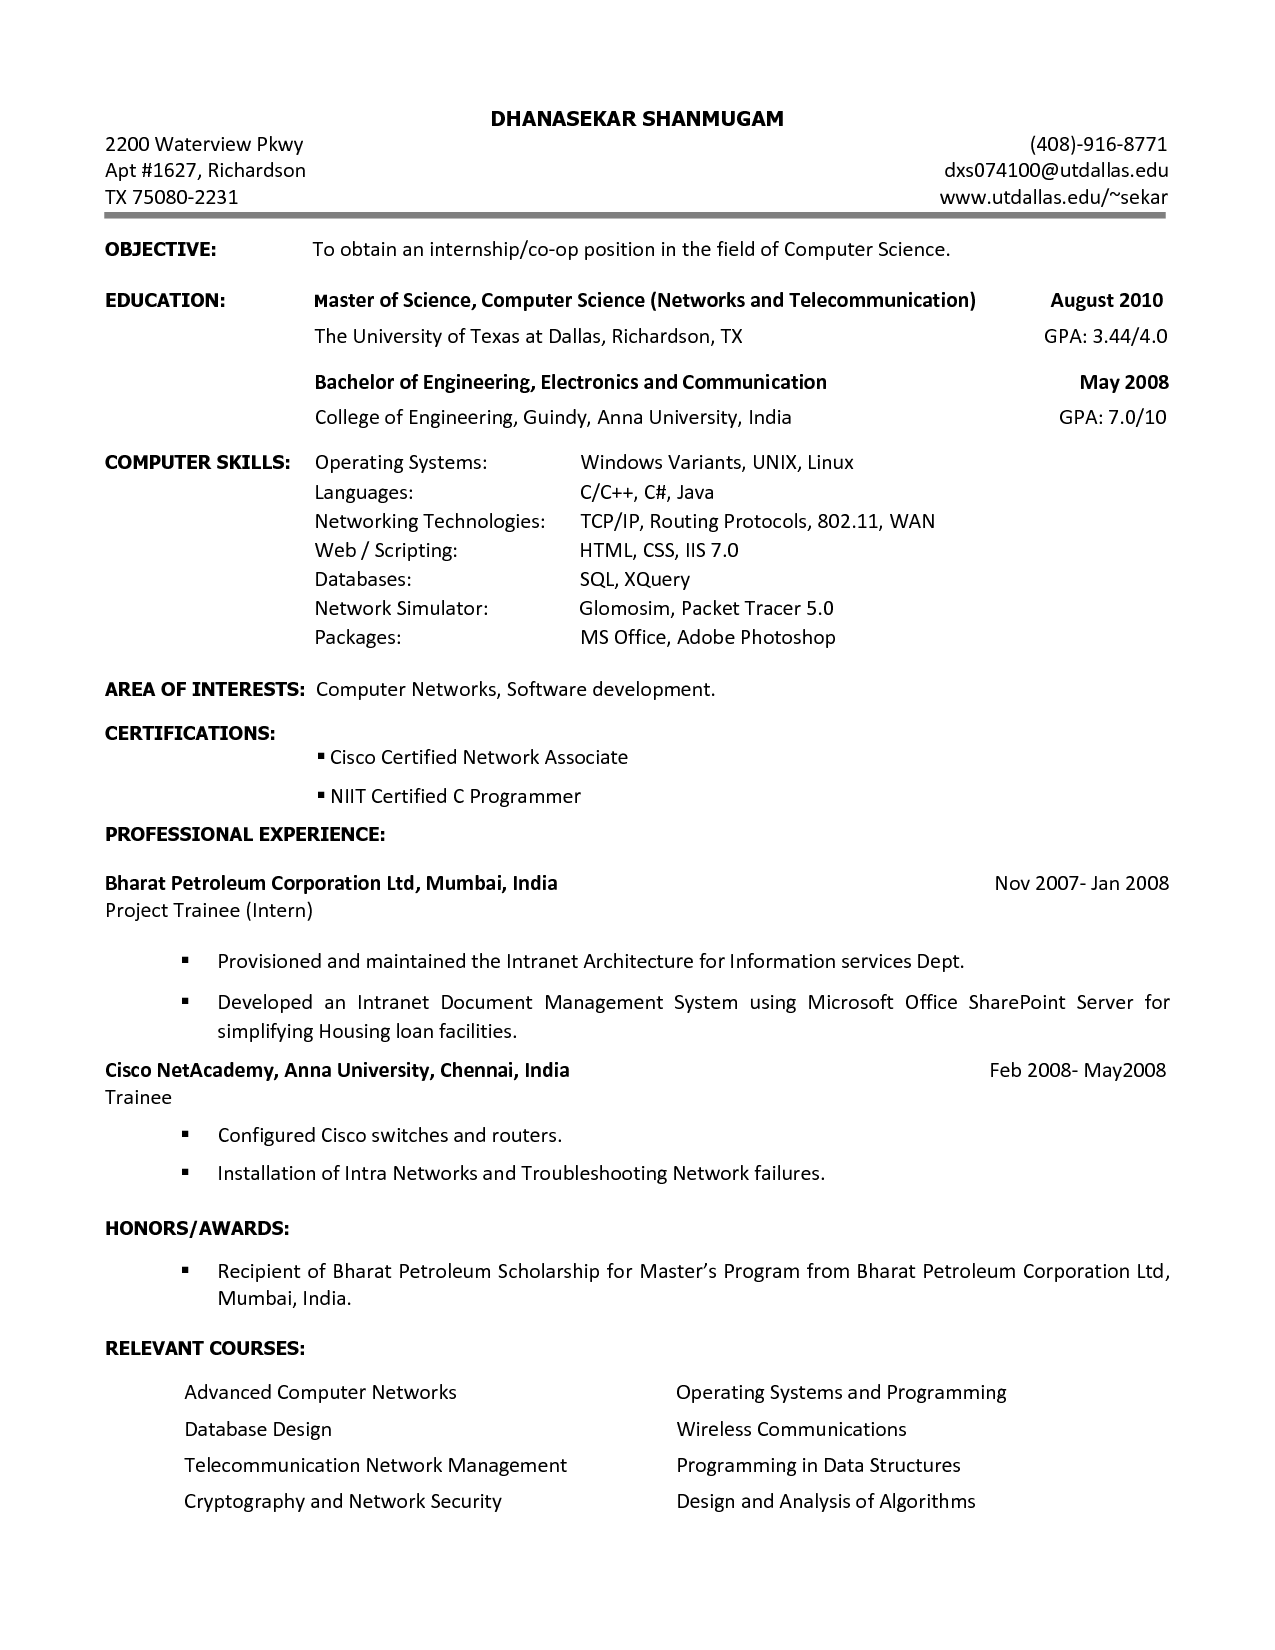 Resume Builder Resume Builder Free Download, Free Resume Builder, Resume  Templates, Resume Builder Free Download Windows 7, Free Resume Builder  Download ...